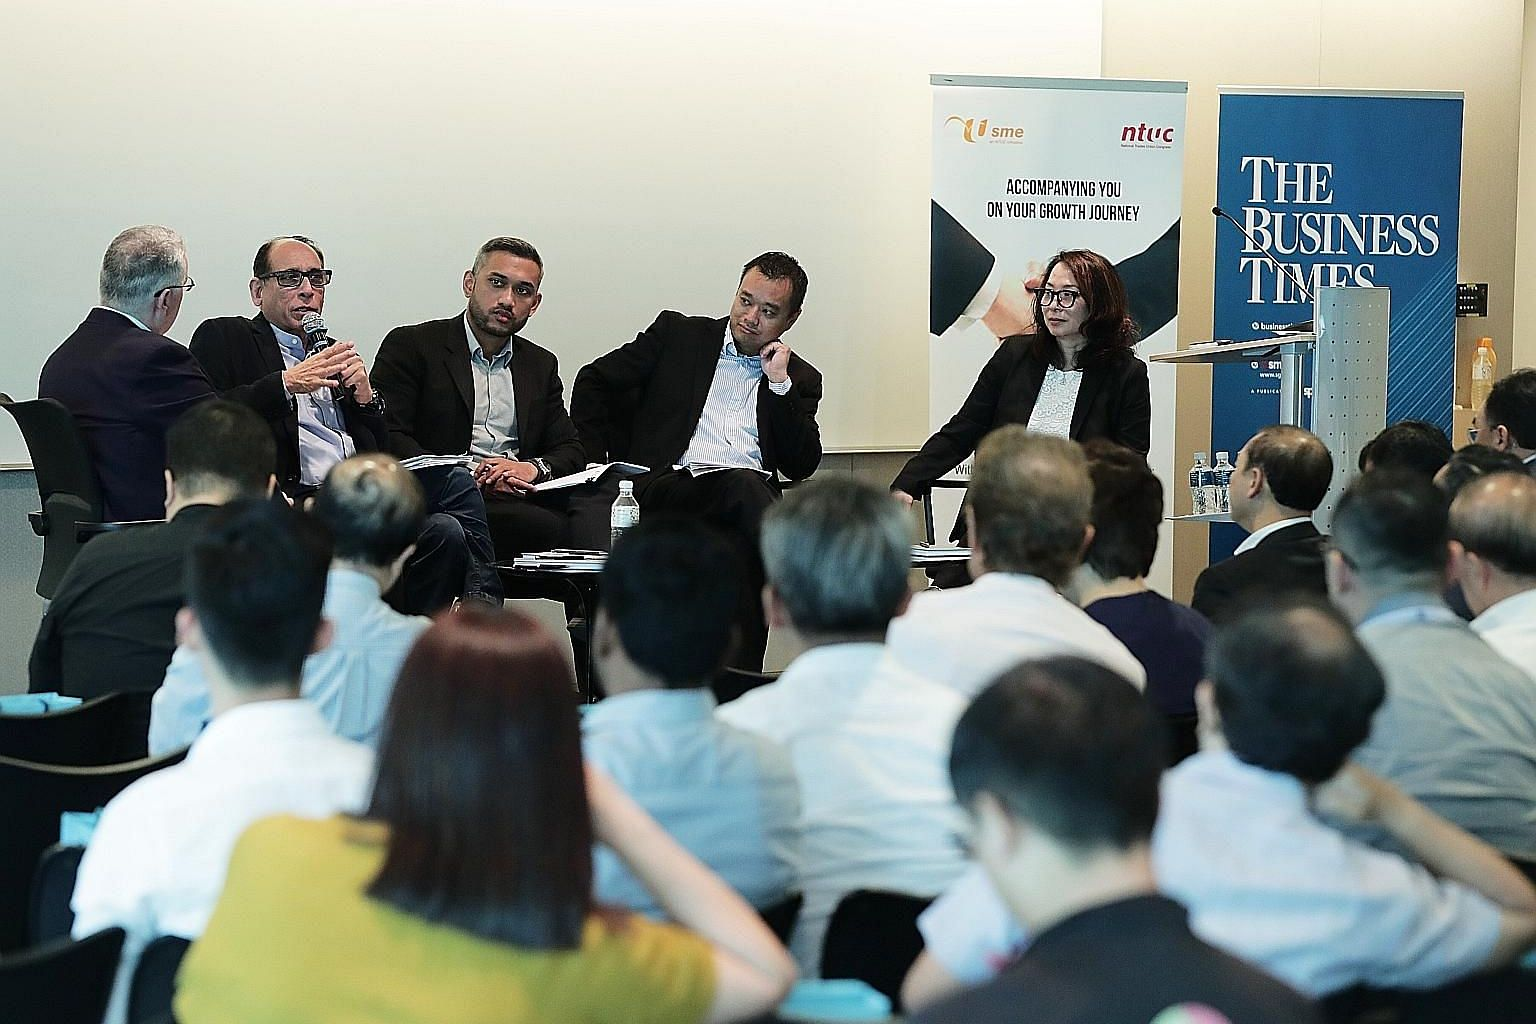 (From left) Singapore International Chamber of Commerce chief executive Victor Mills moderating the panel discussion, which featured The Straits Times' associate editor, Mr Vikram Khanna; Mr Ahmad Nazmi Idrus, a senior economist at RHB Investment Ban